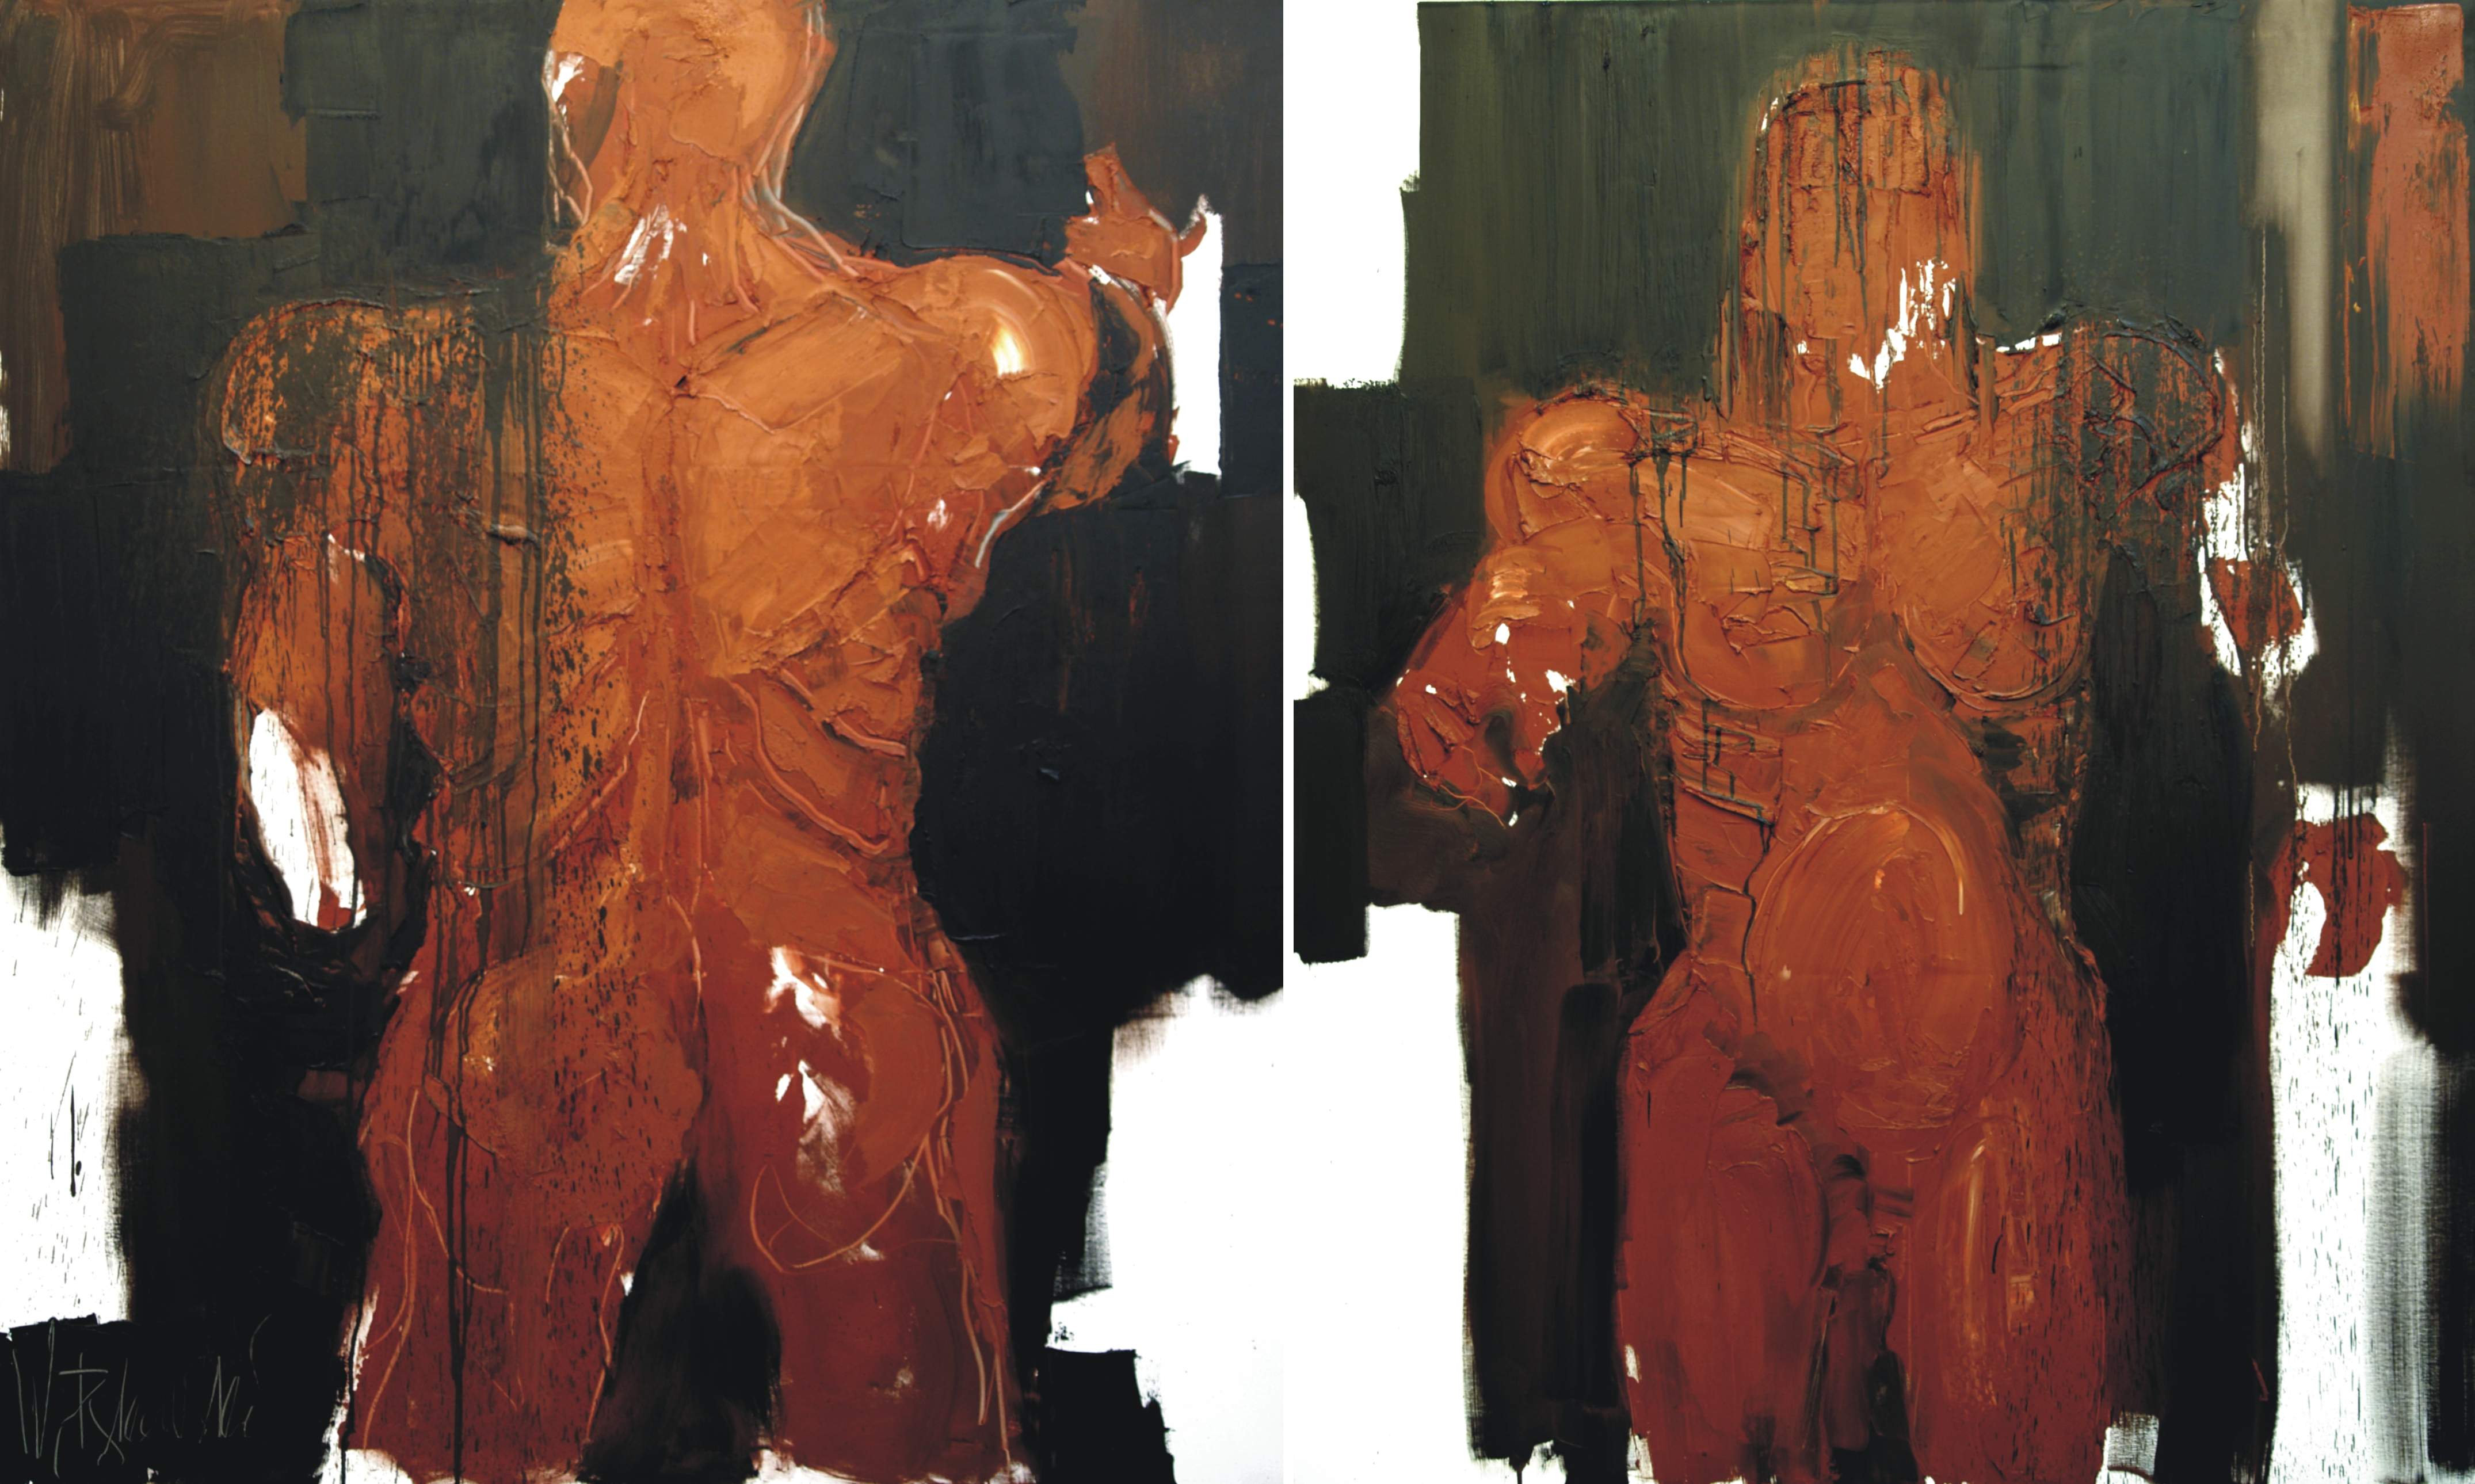 Adam_and_Eve,_2010,_oil_on_canvas,_two_sections,_150X270,_59X106,5""